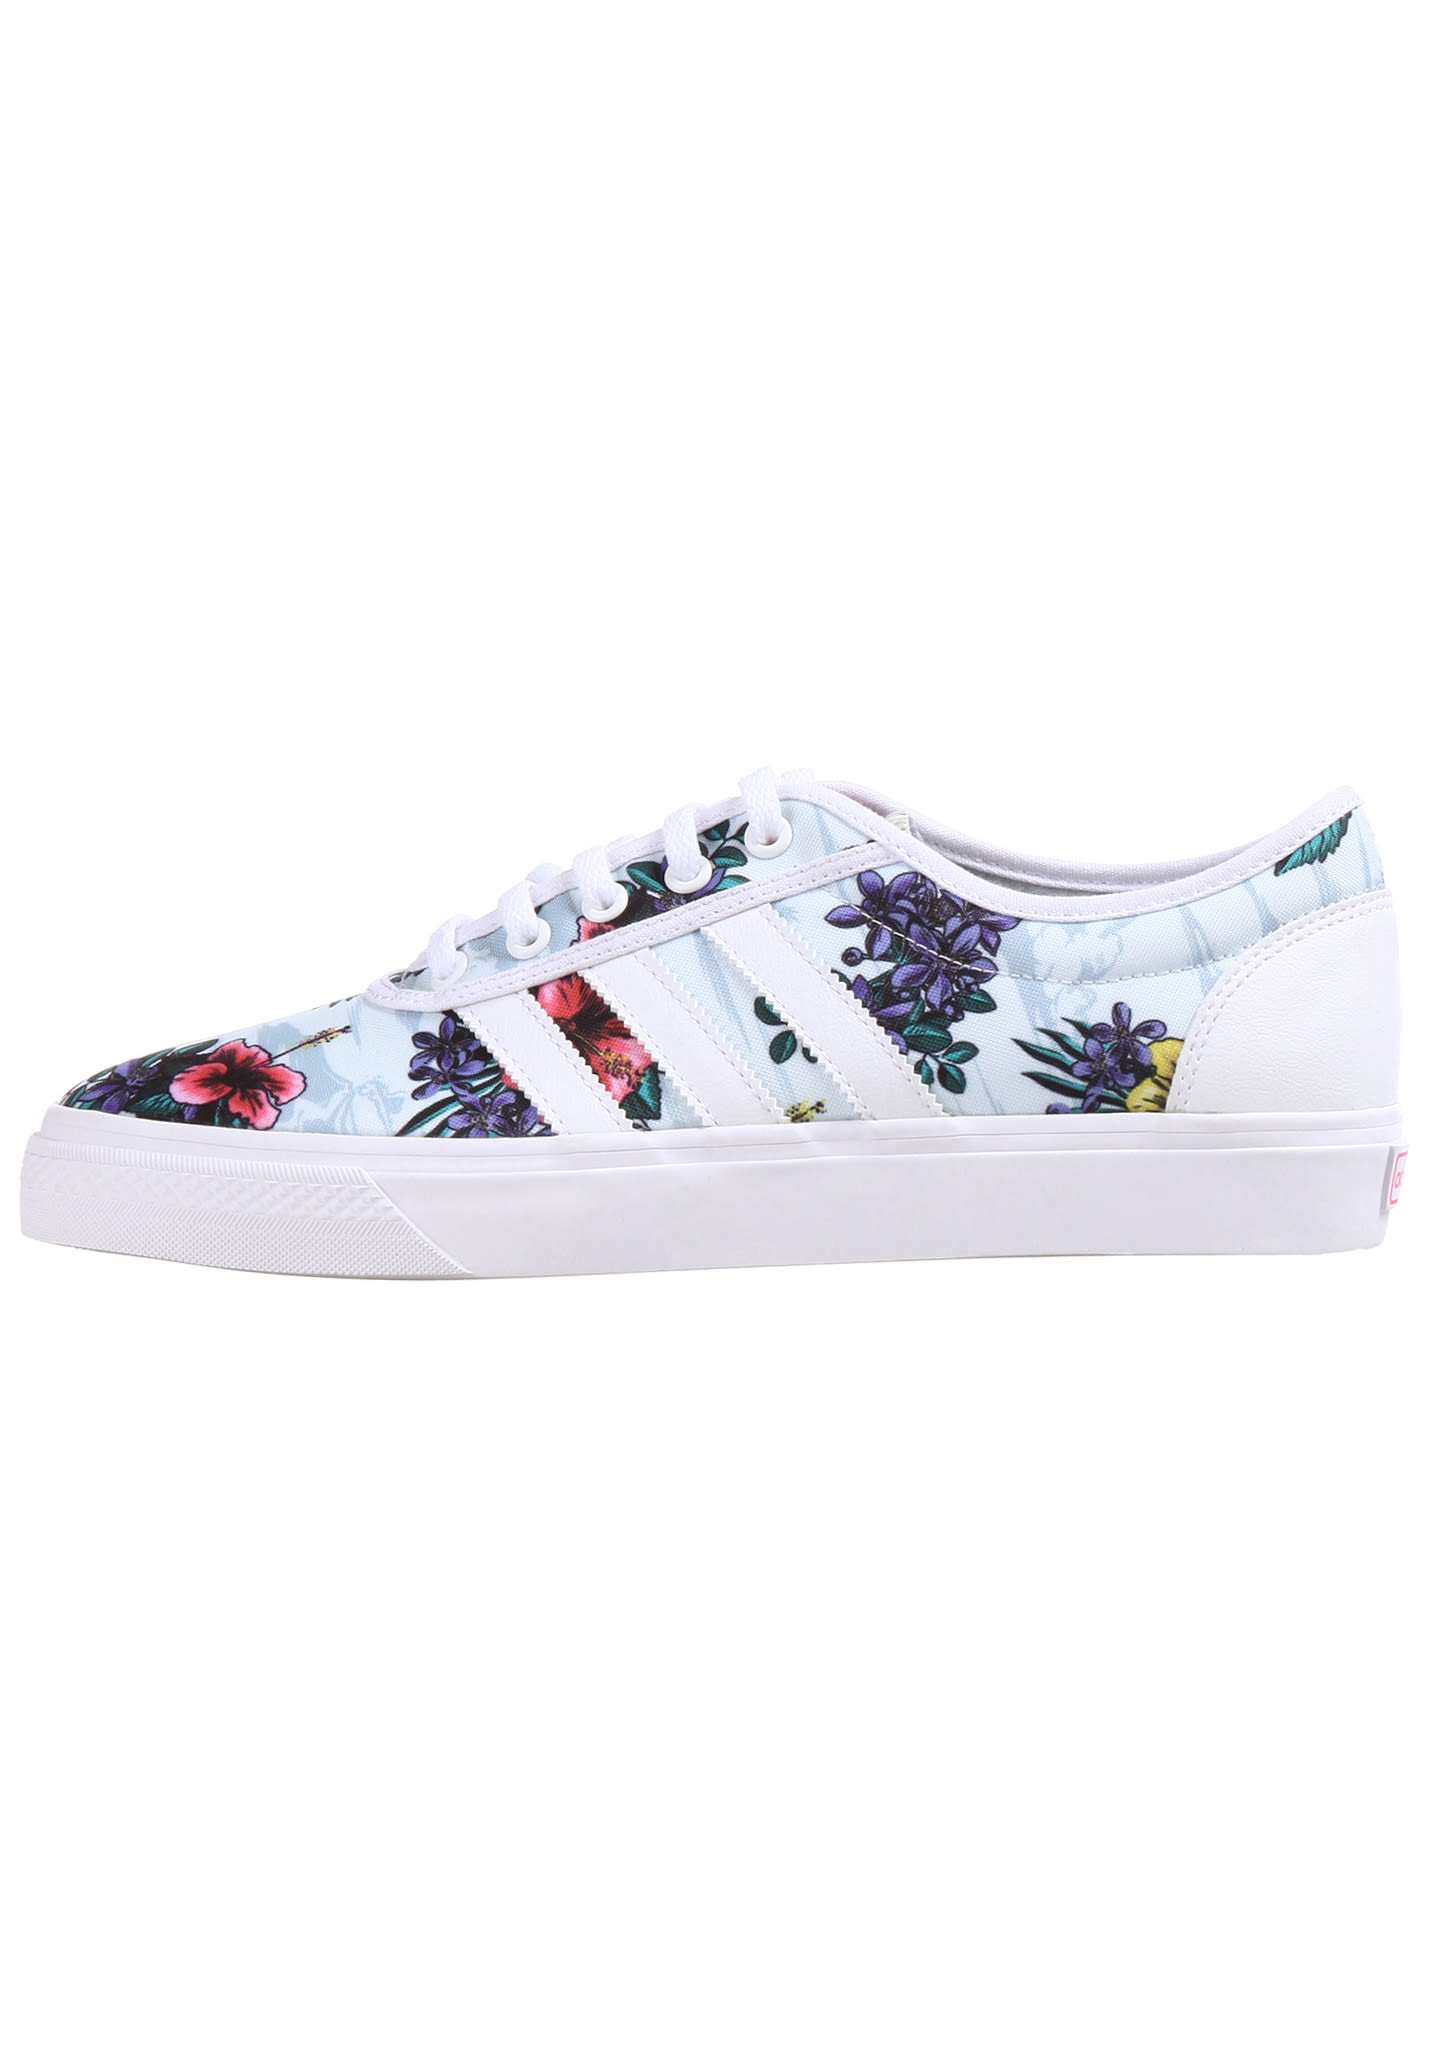 buy online 3a570 99036 Zapatillas Adi Skateboarding Sports Ease Planet Adidas Multicolor wRtxx